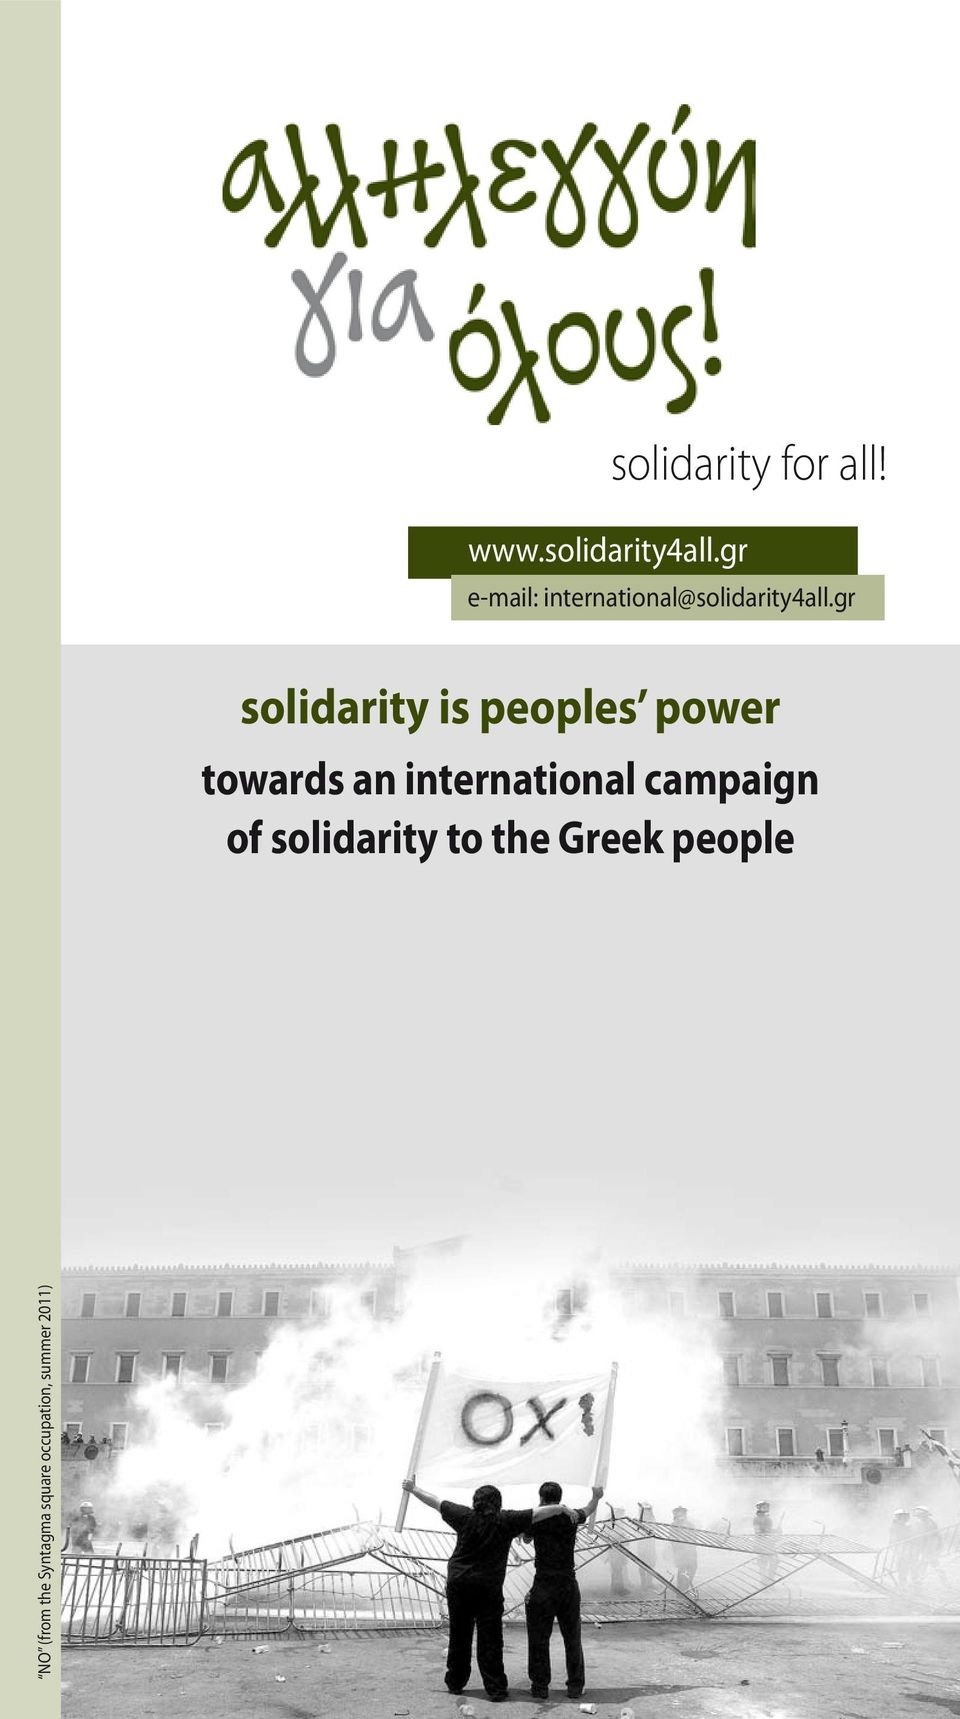 gr solidarity is peoples power towards an international